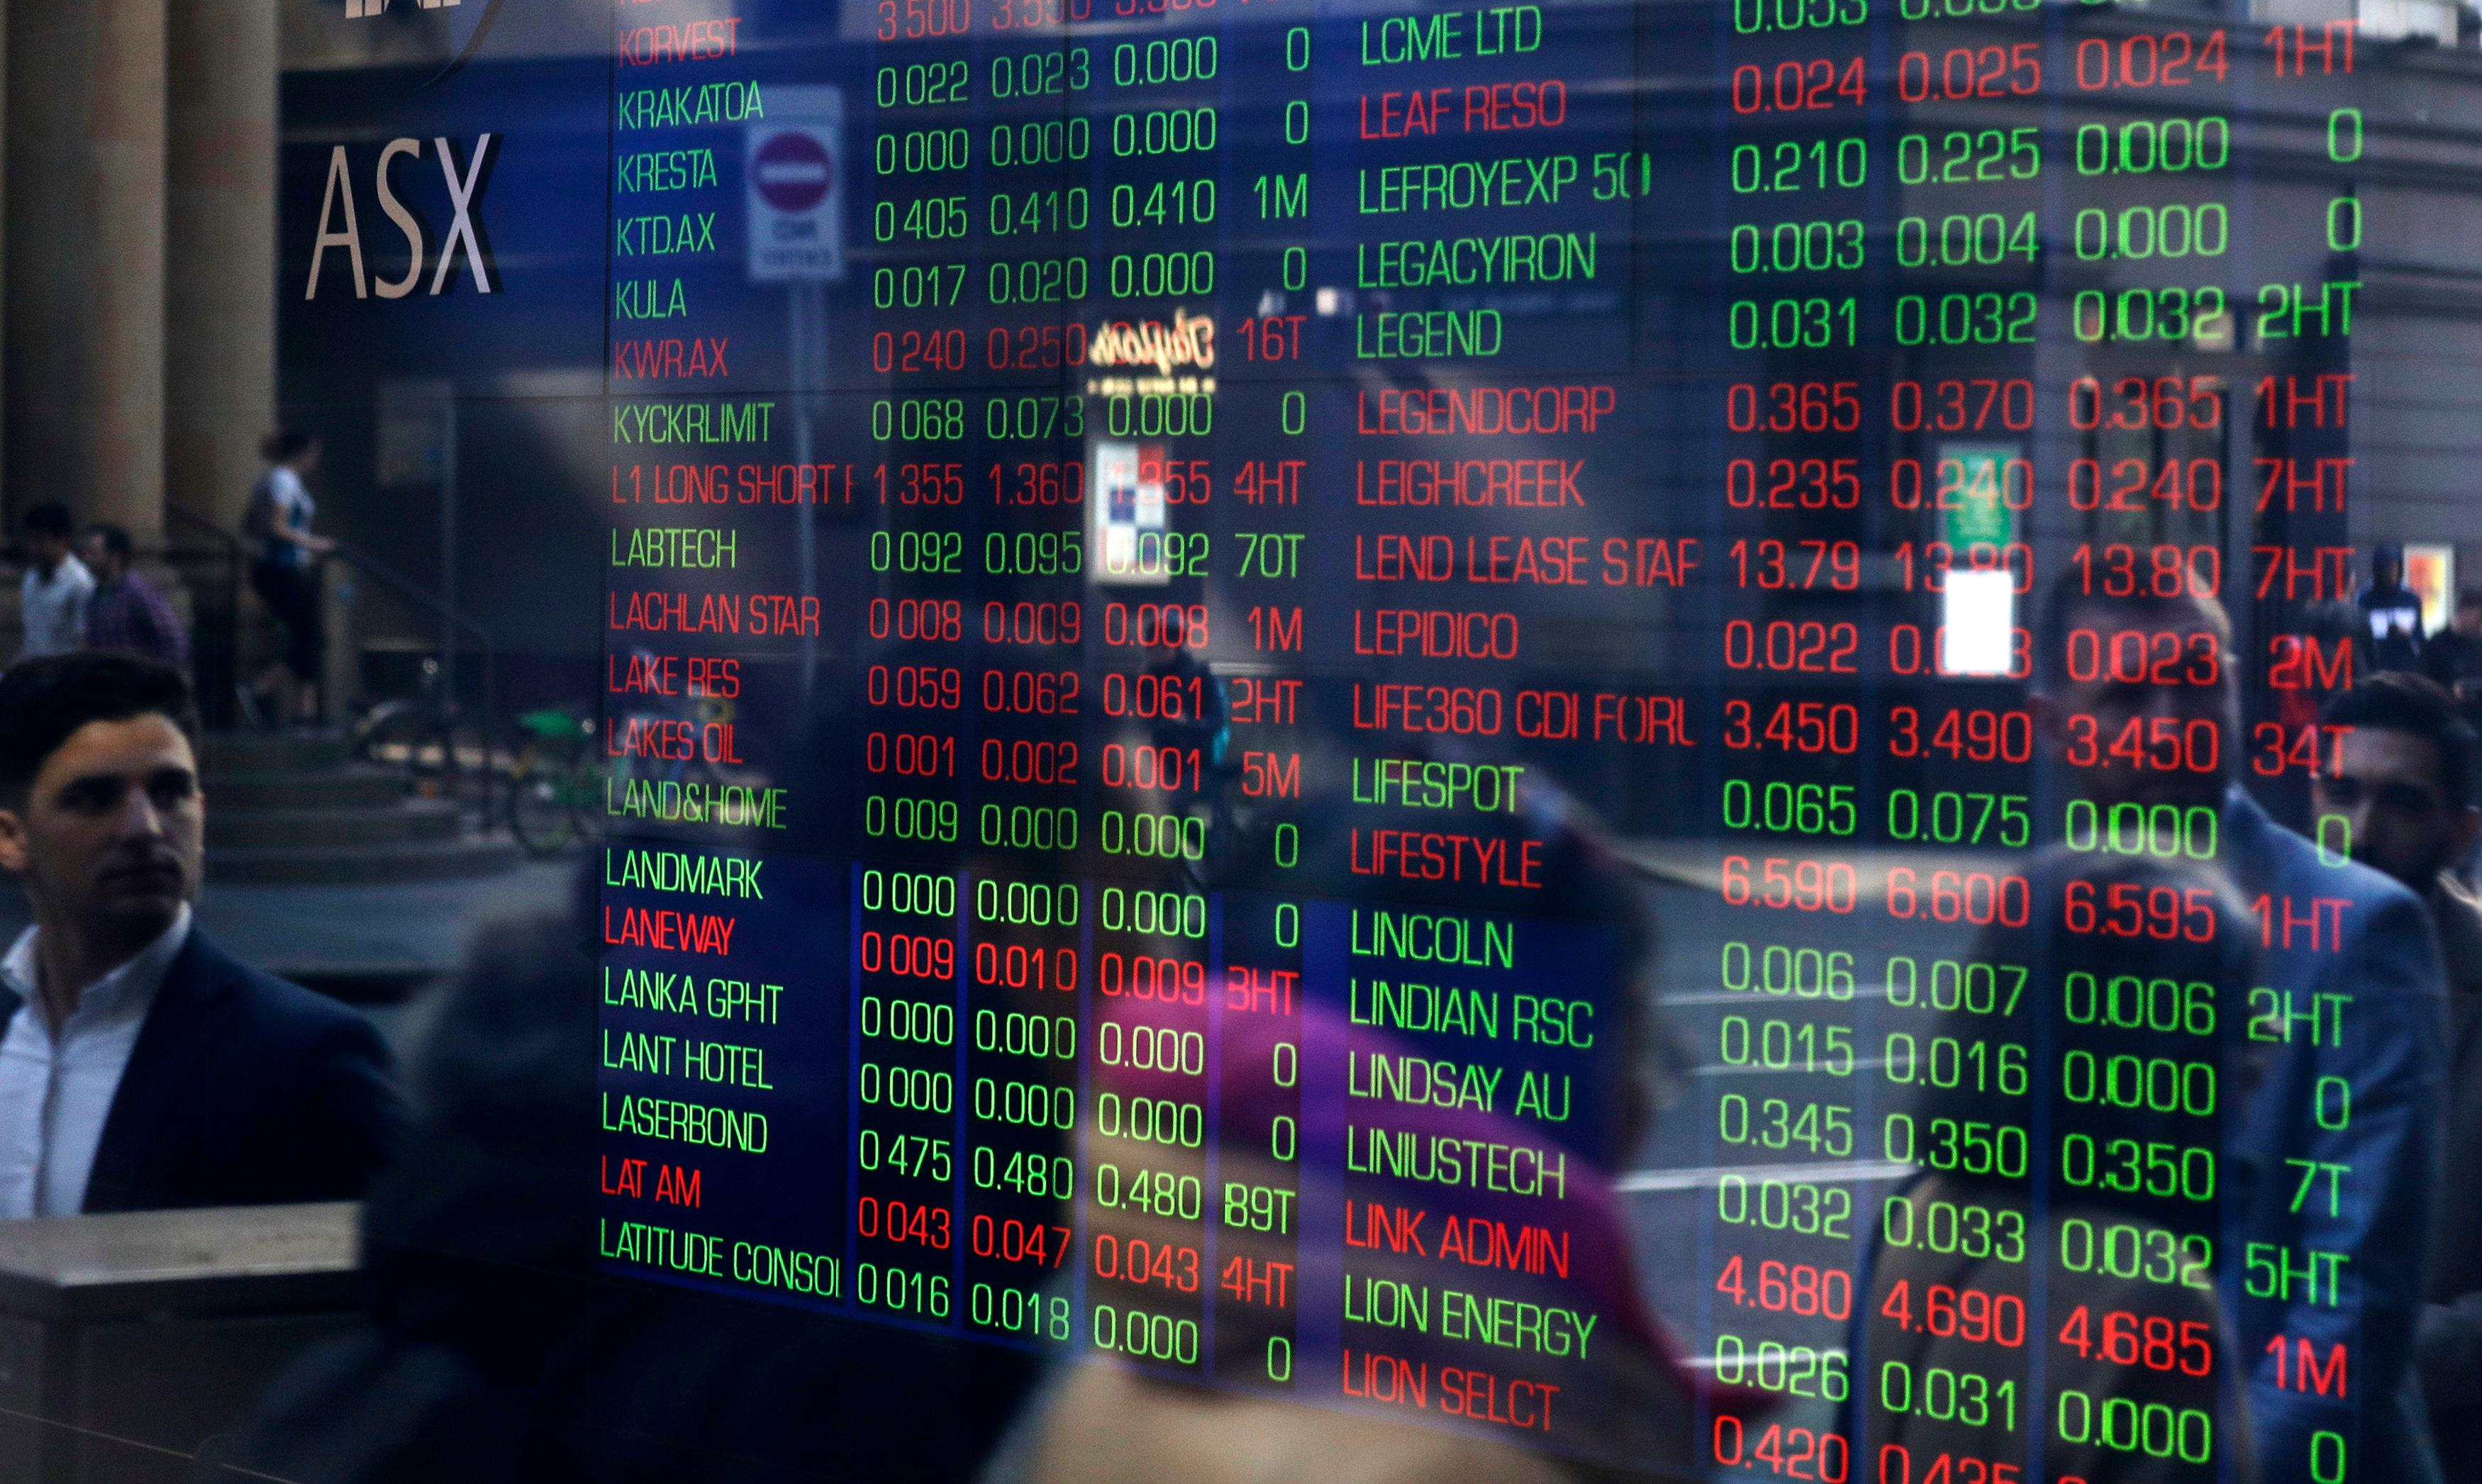 People are reflected in a window as they walk past the Australian Stock Exchange in Sydney, Thursday, Aug. 15, 2019. (AP Photo/Rick Rycroft)